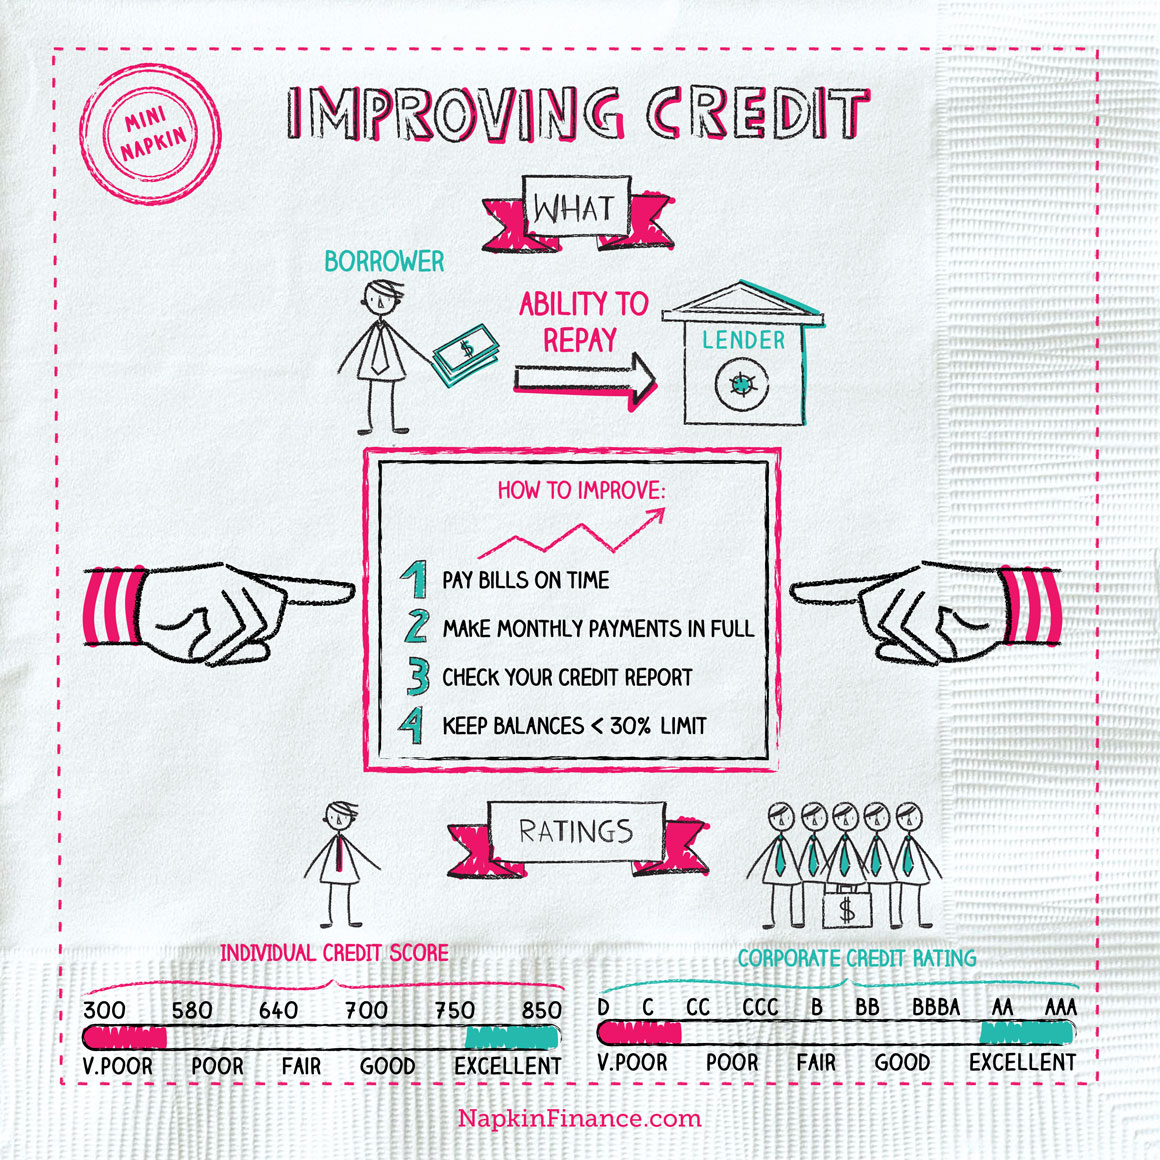 NapkinFinance-ImprovingCredit-Napkin-10-12-18-v02